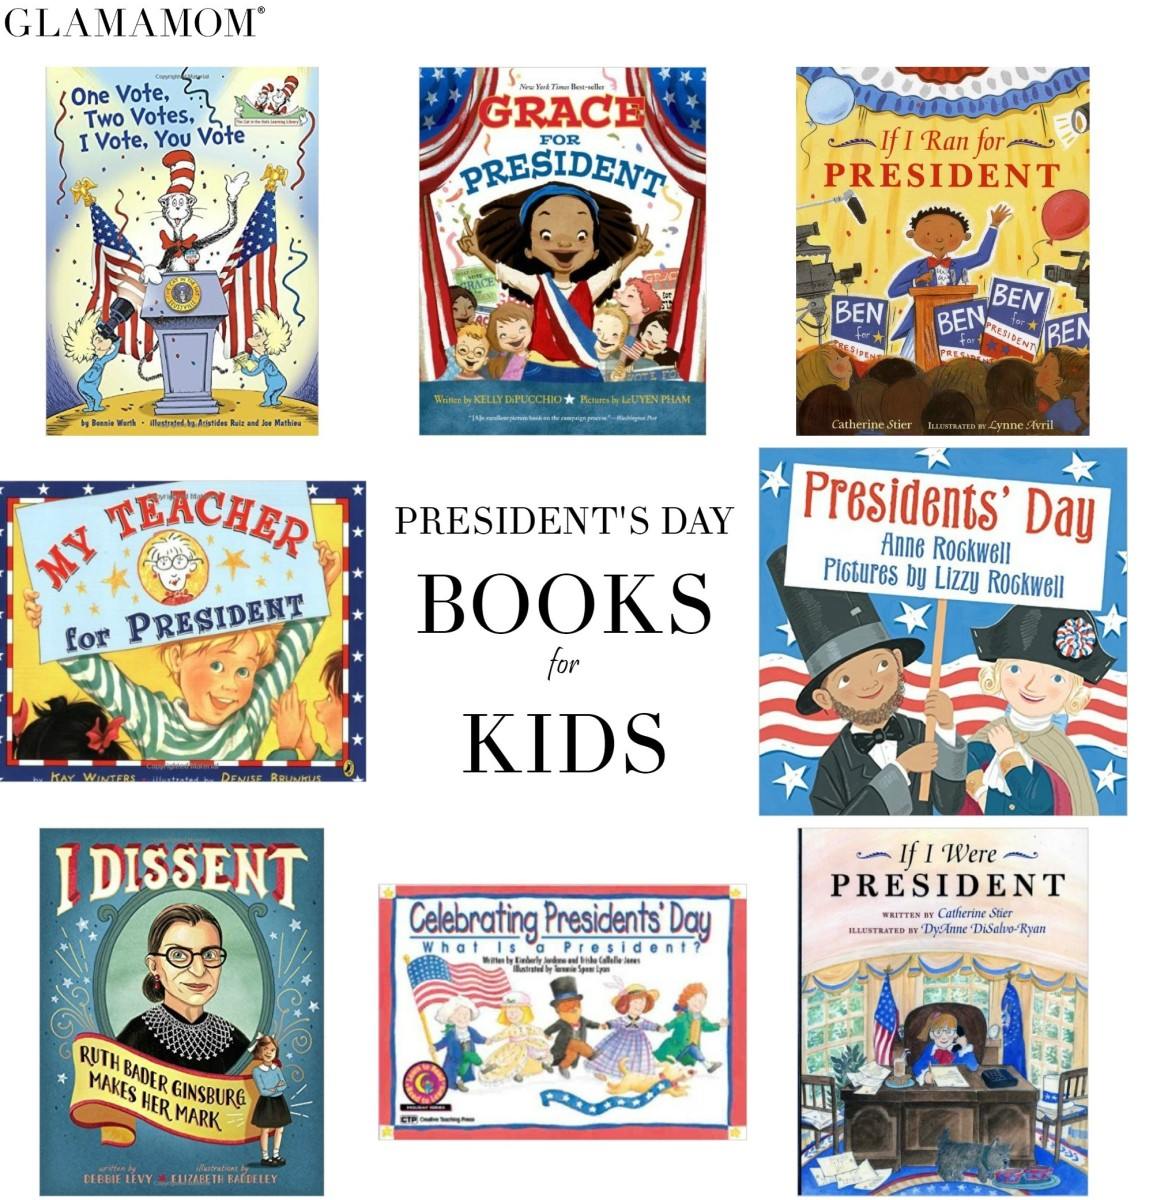 President's Day Books for Kids.jpg